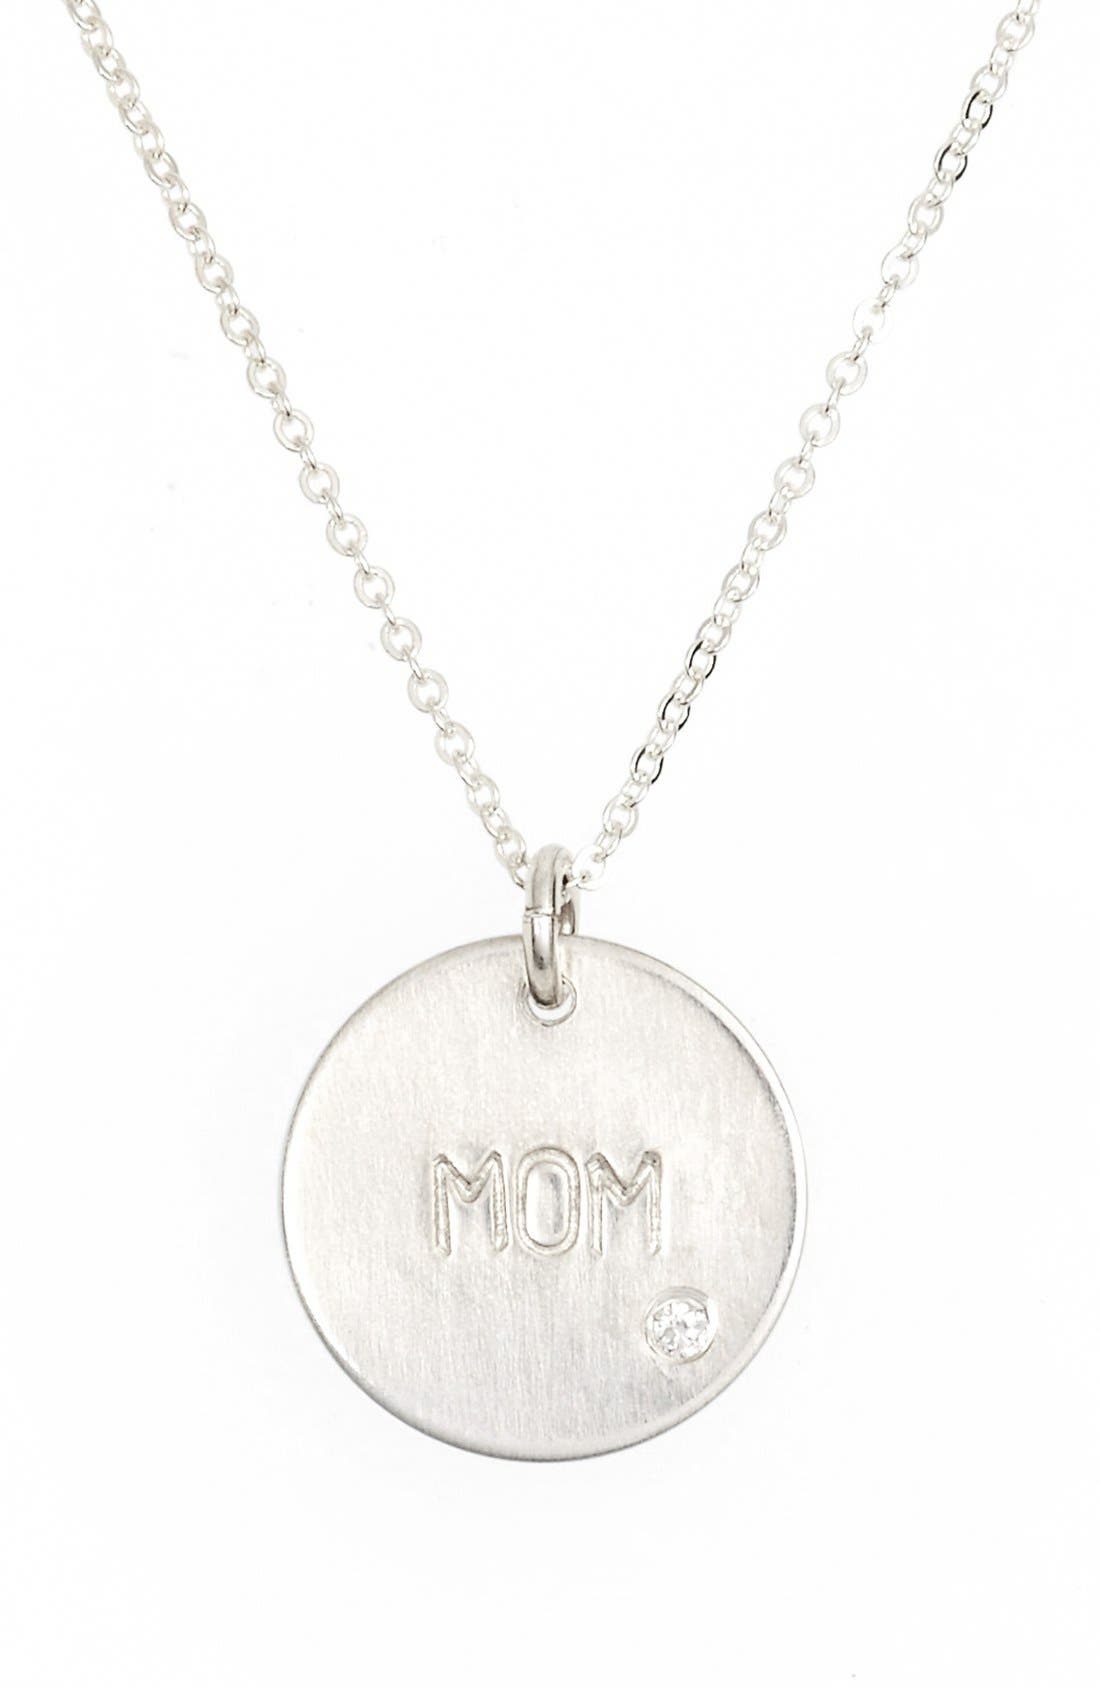 Main Image - Nashelle Diamond Pendant Necklace